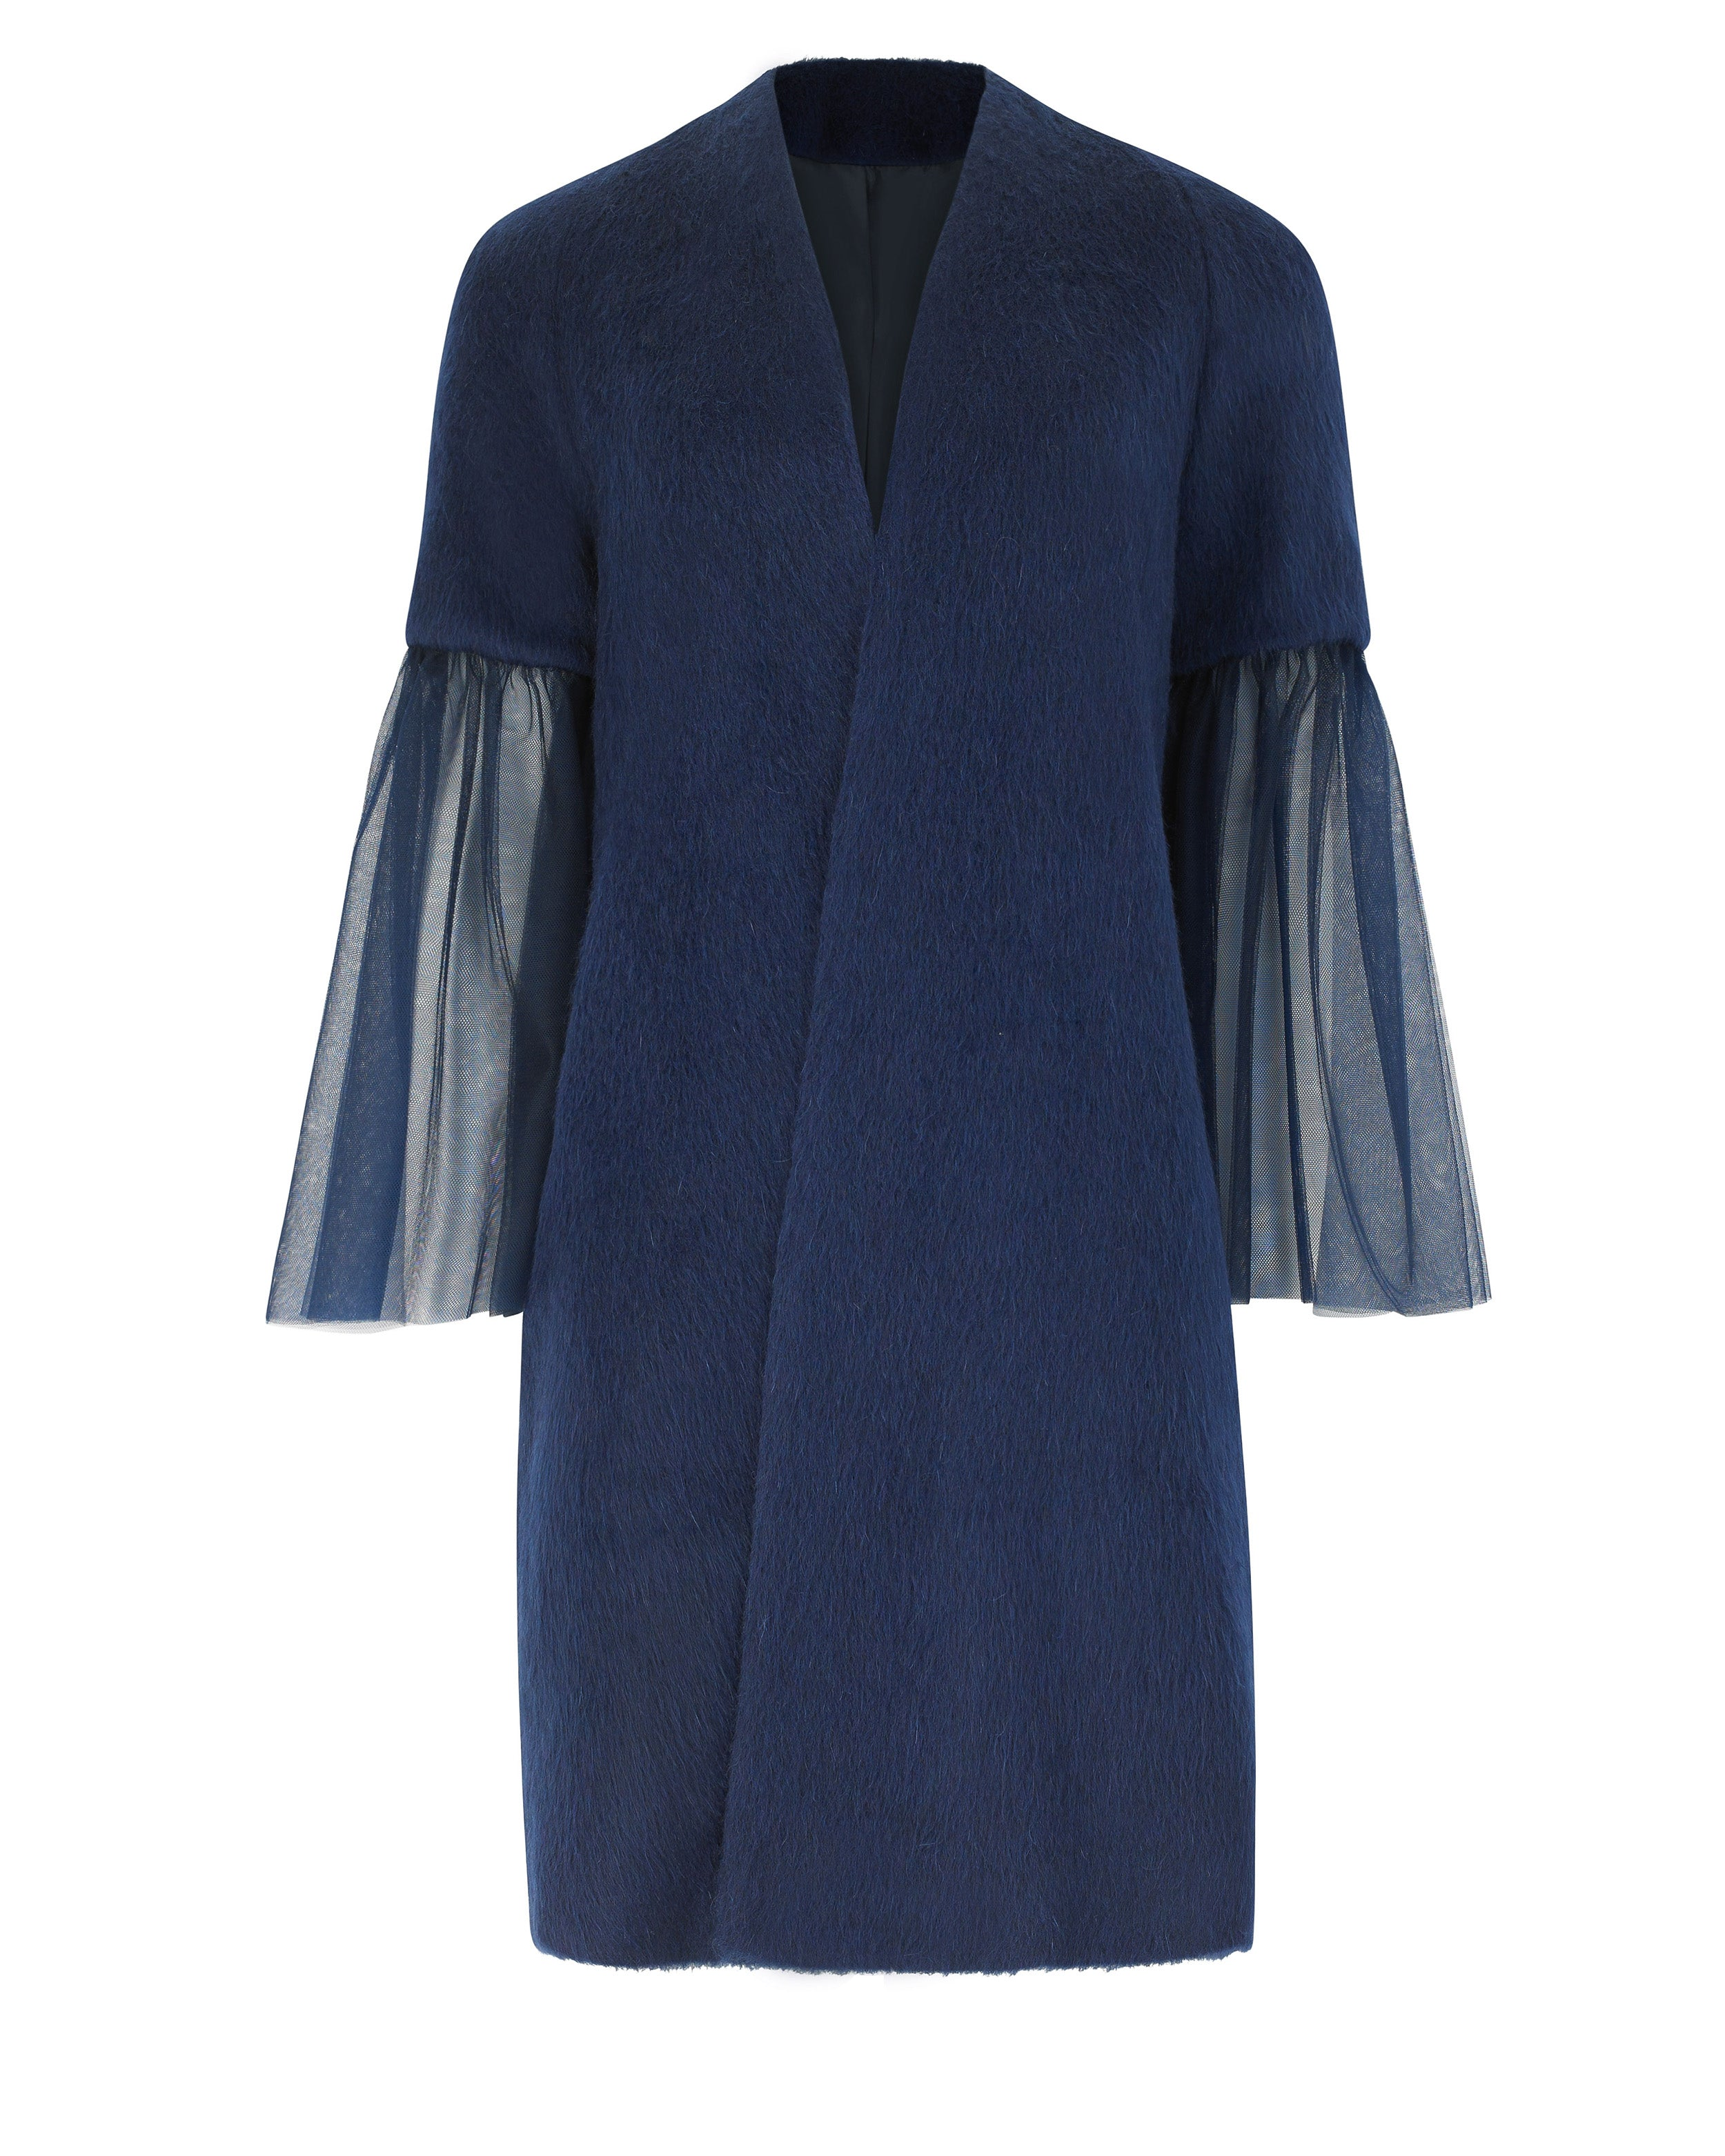 Pfeiffer Coat in Big on Blue